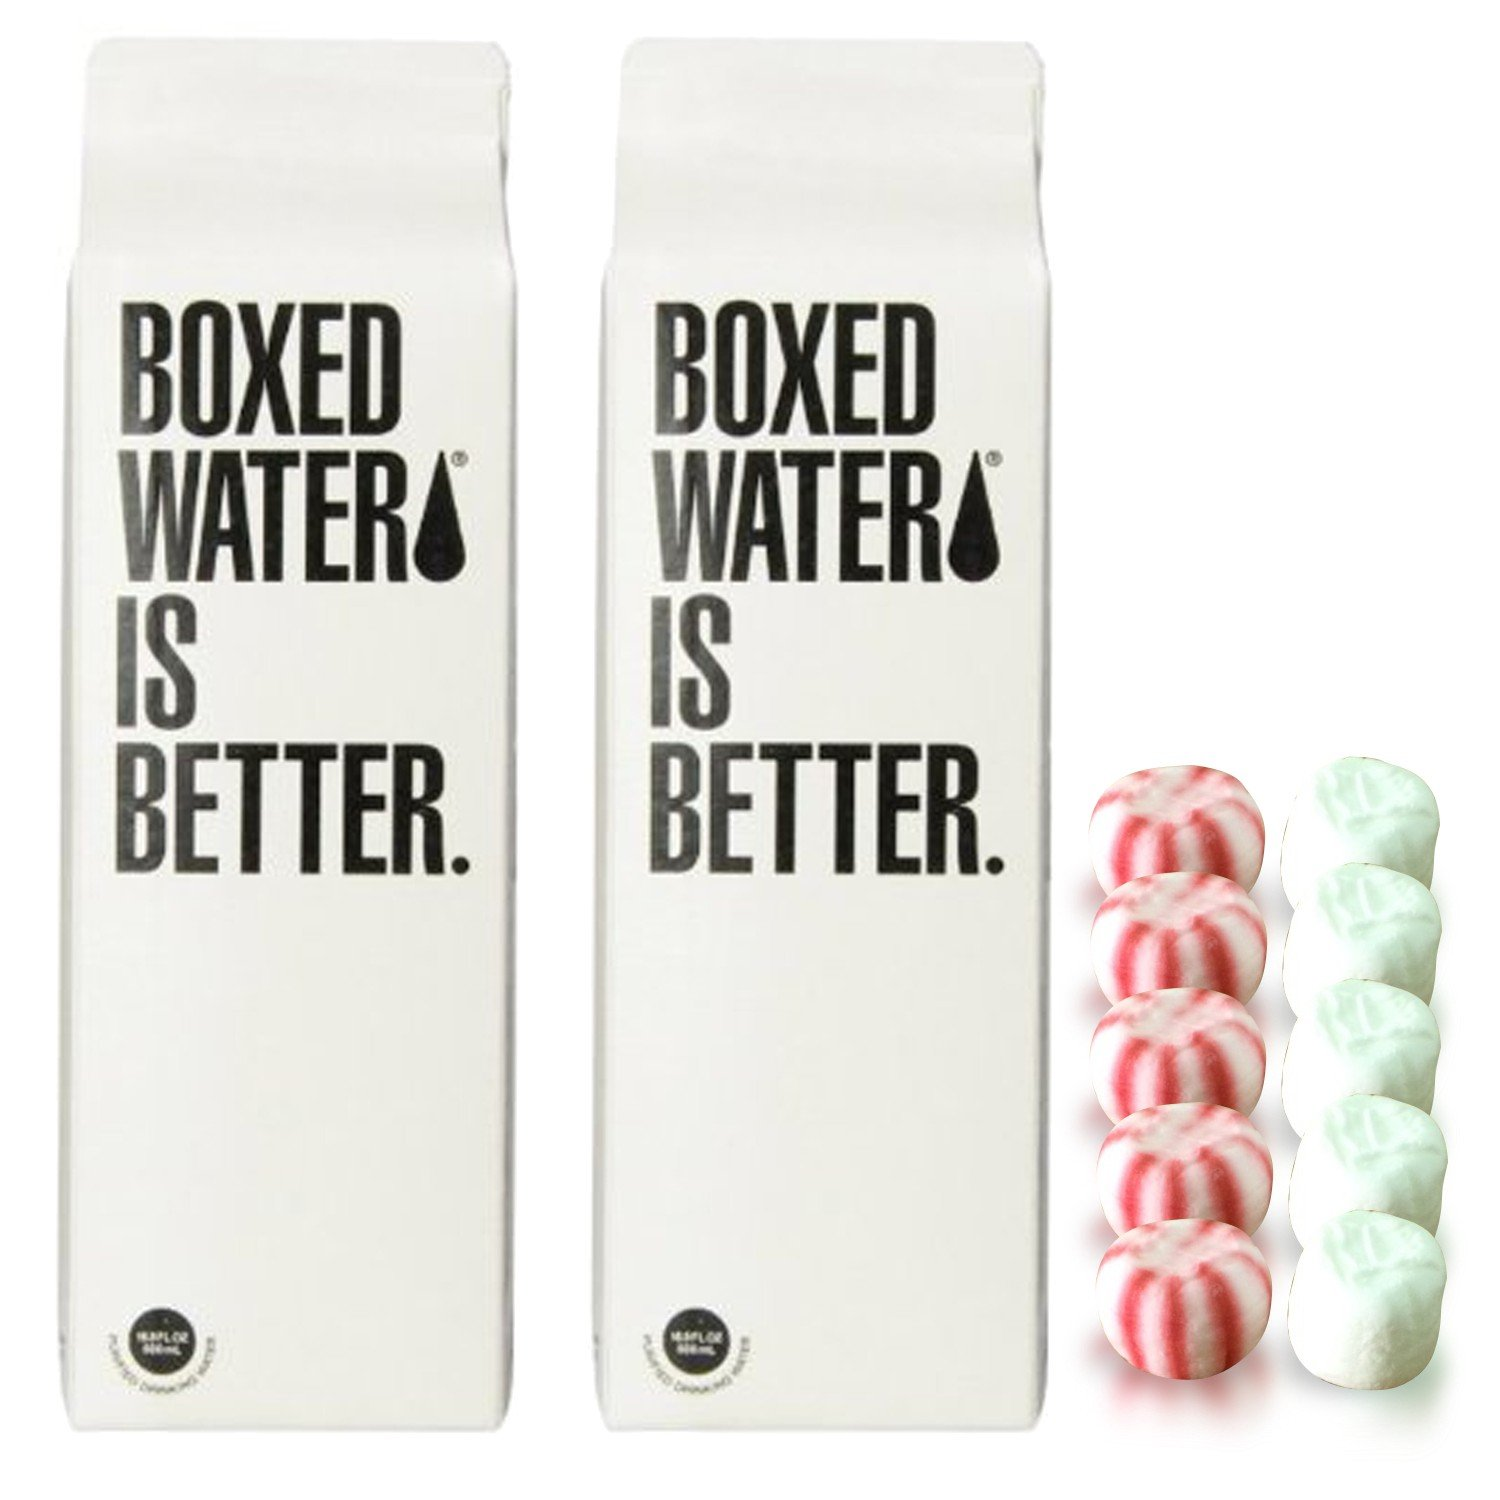 Boxed Water Is Better 500ml Including Thank You Mints, 2 Pack